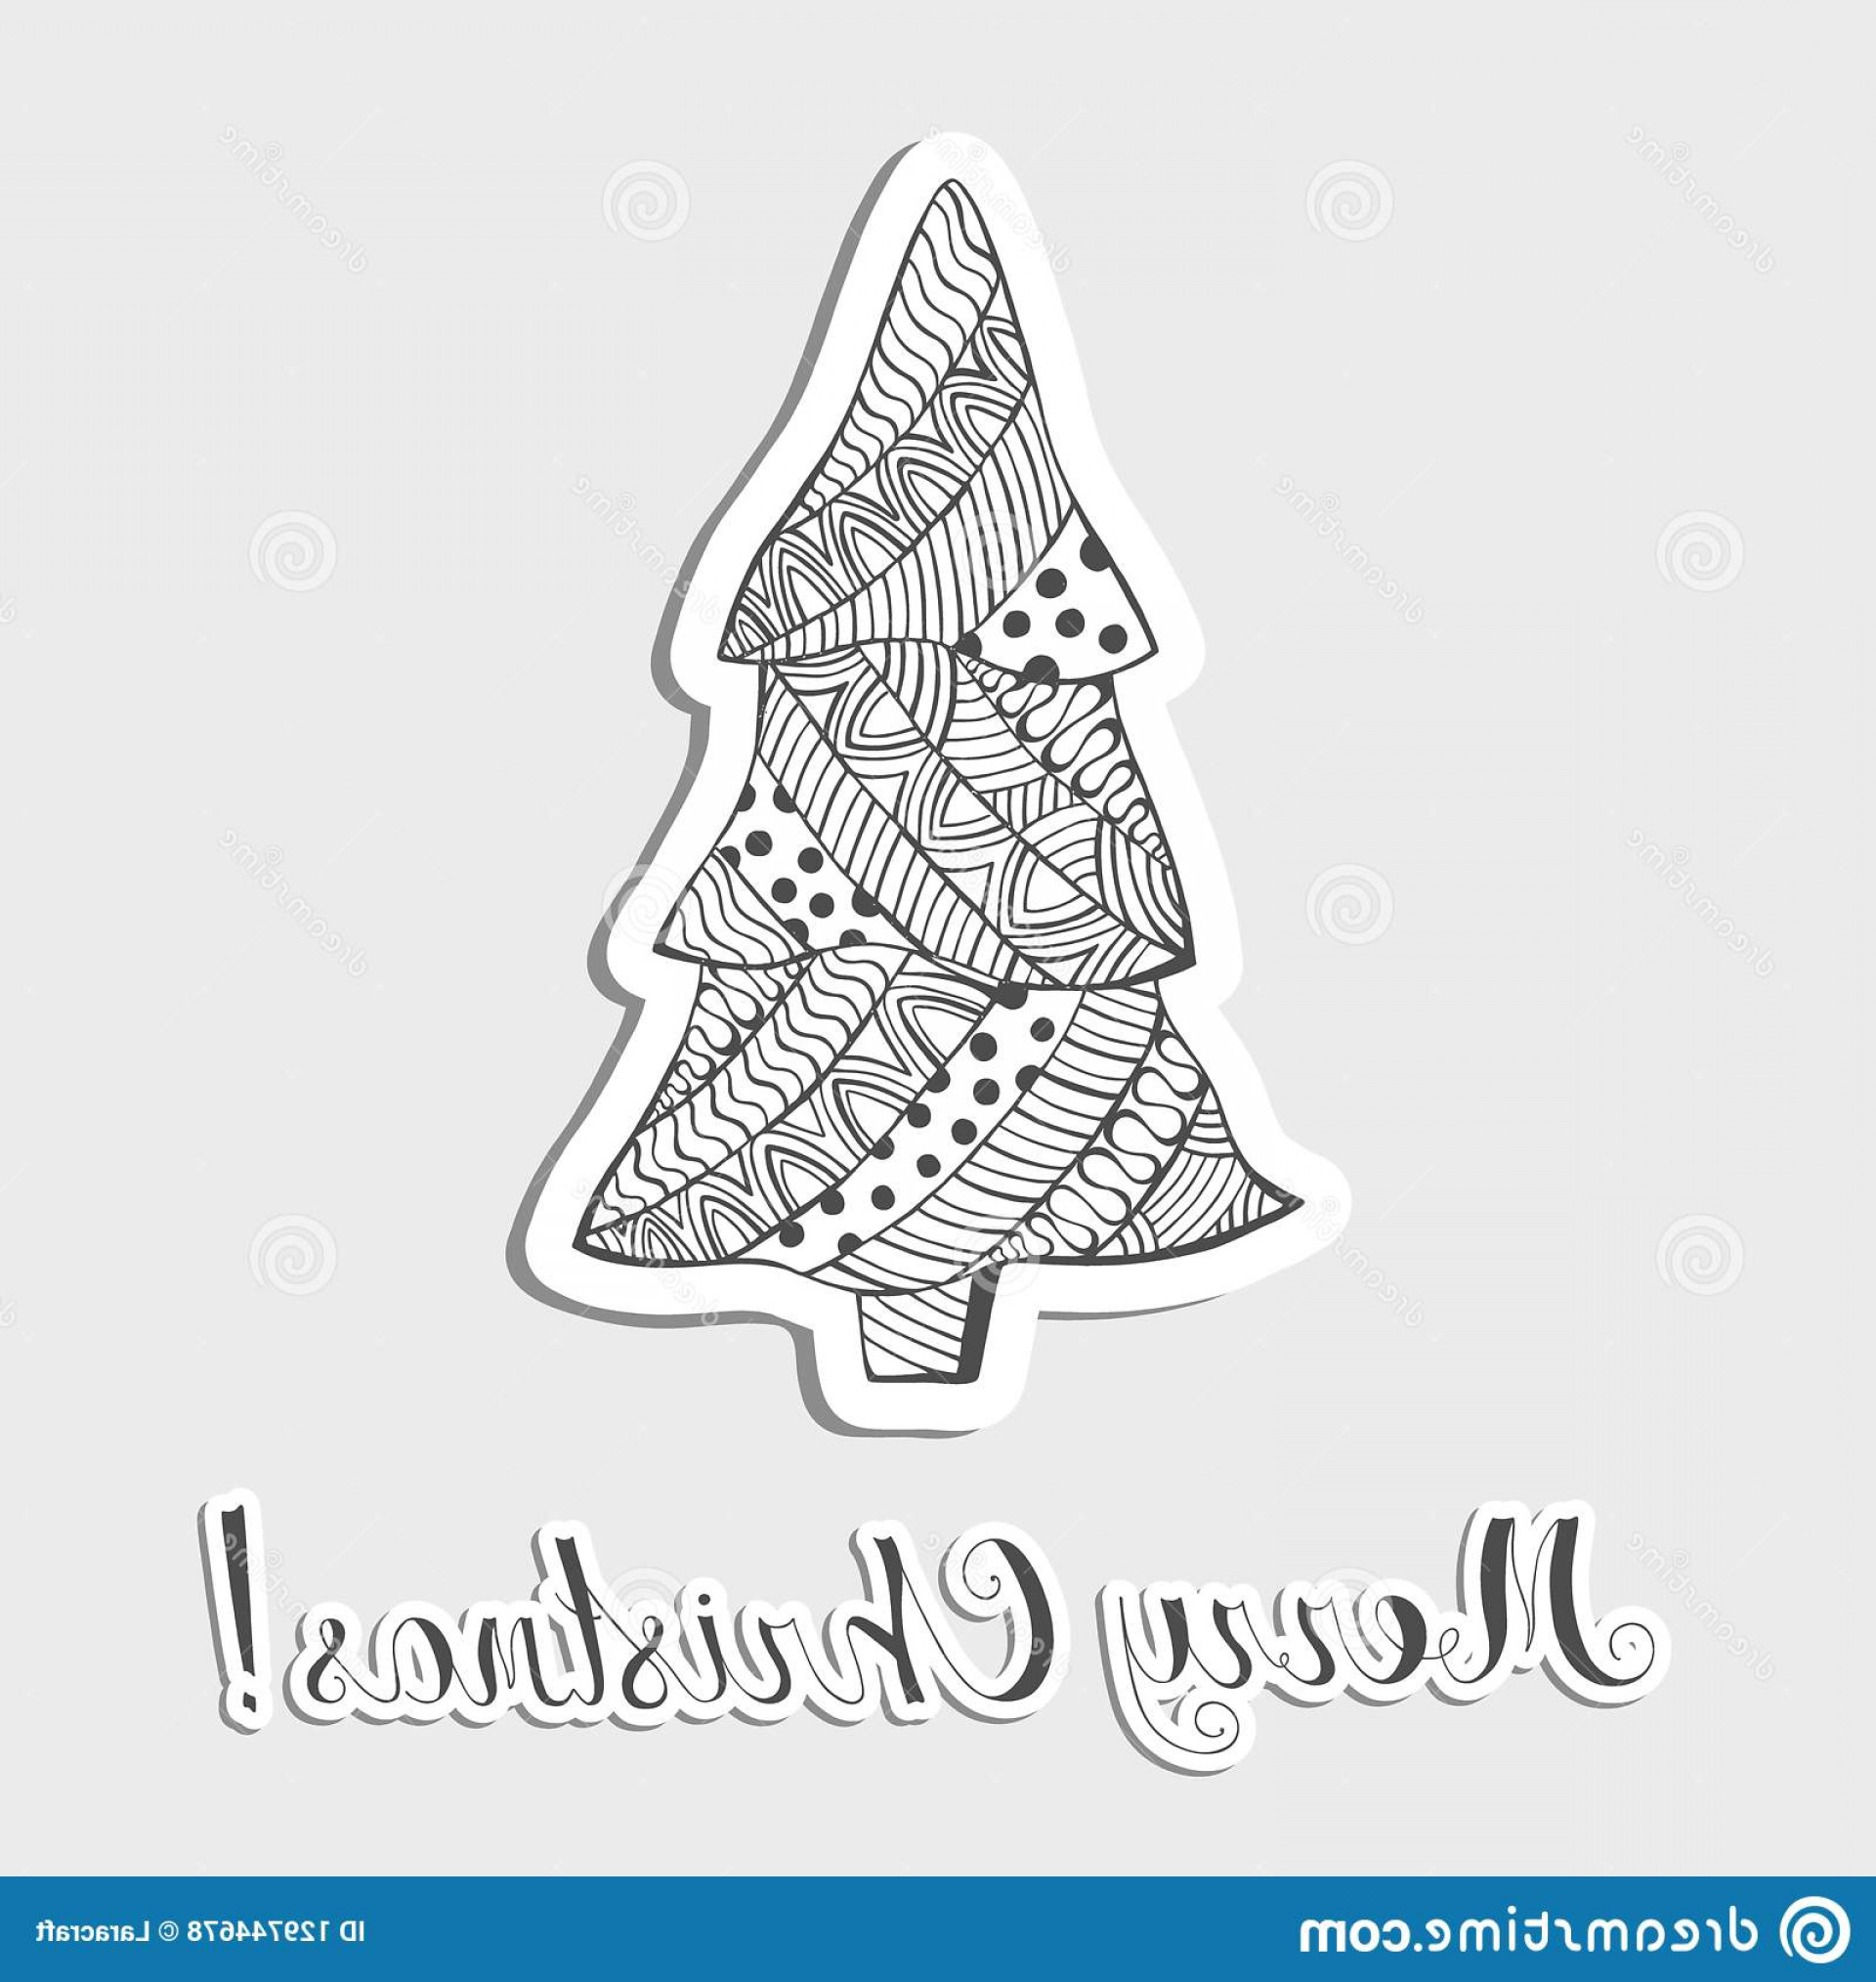 Vector-Based Grayscale Christmas: Patterned Grayscale Christmas Tree Made As Sticker Lettering Stickers Paper Carving Boho Zentangle Doodle Style Pattern Image